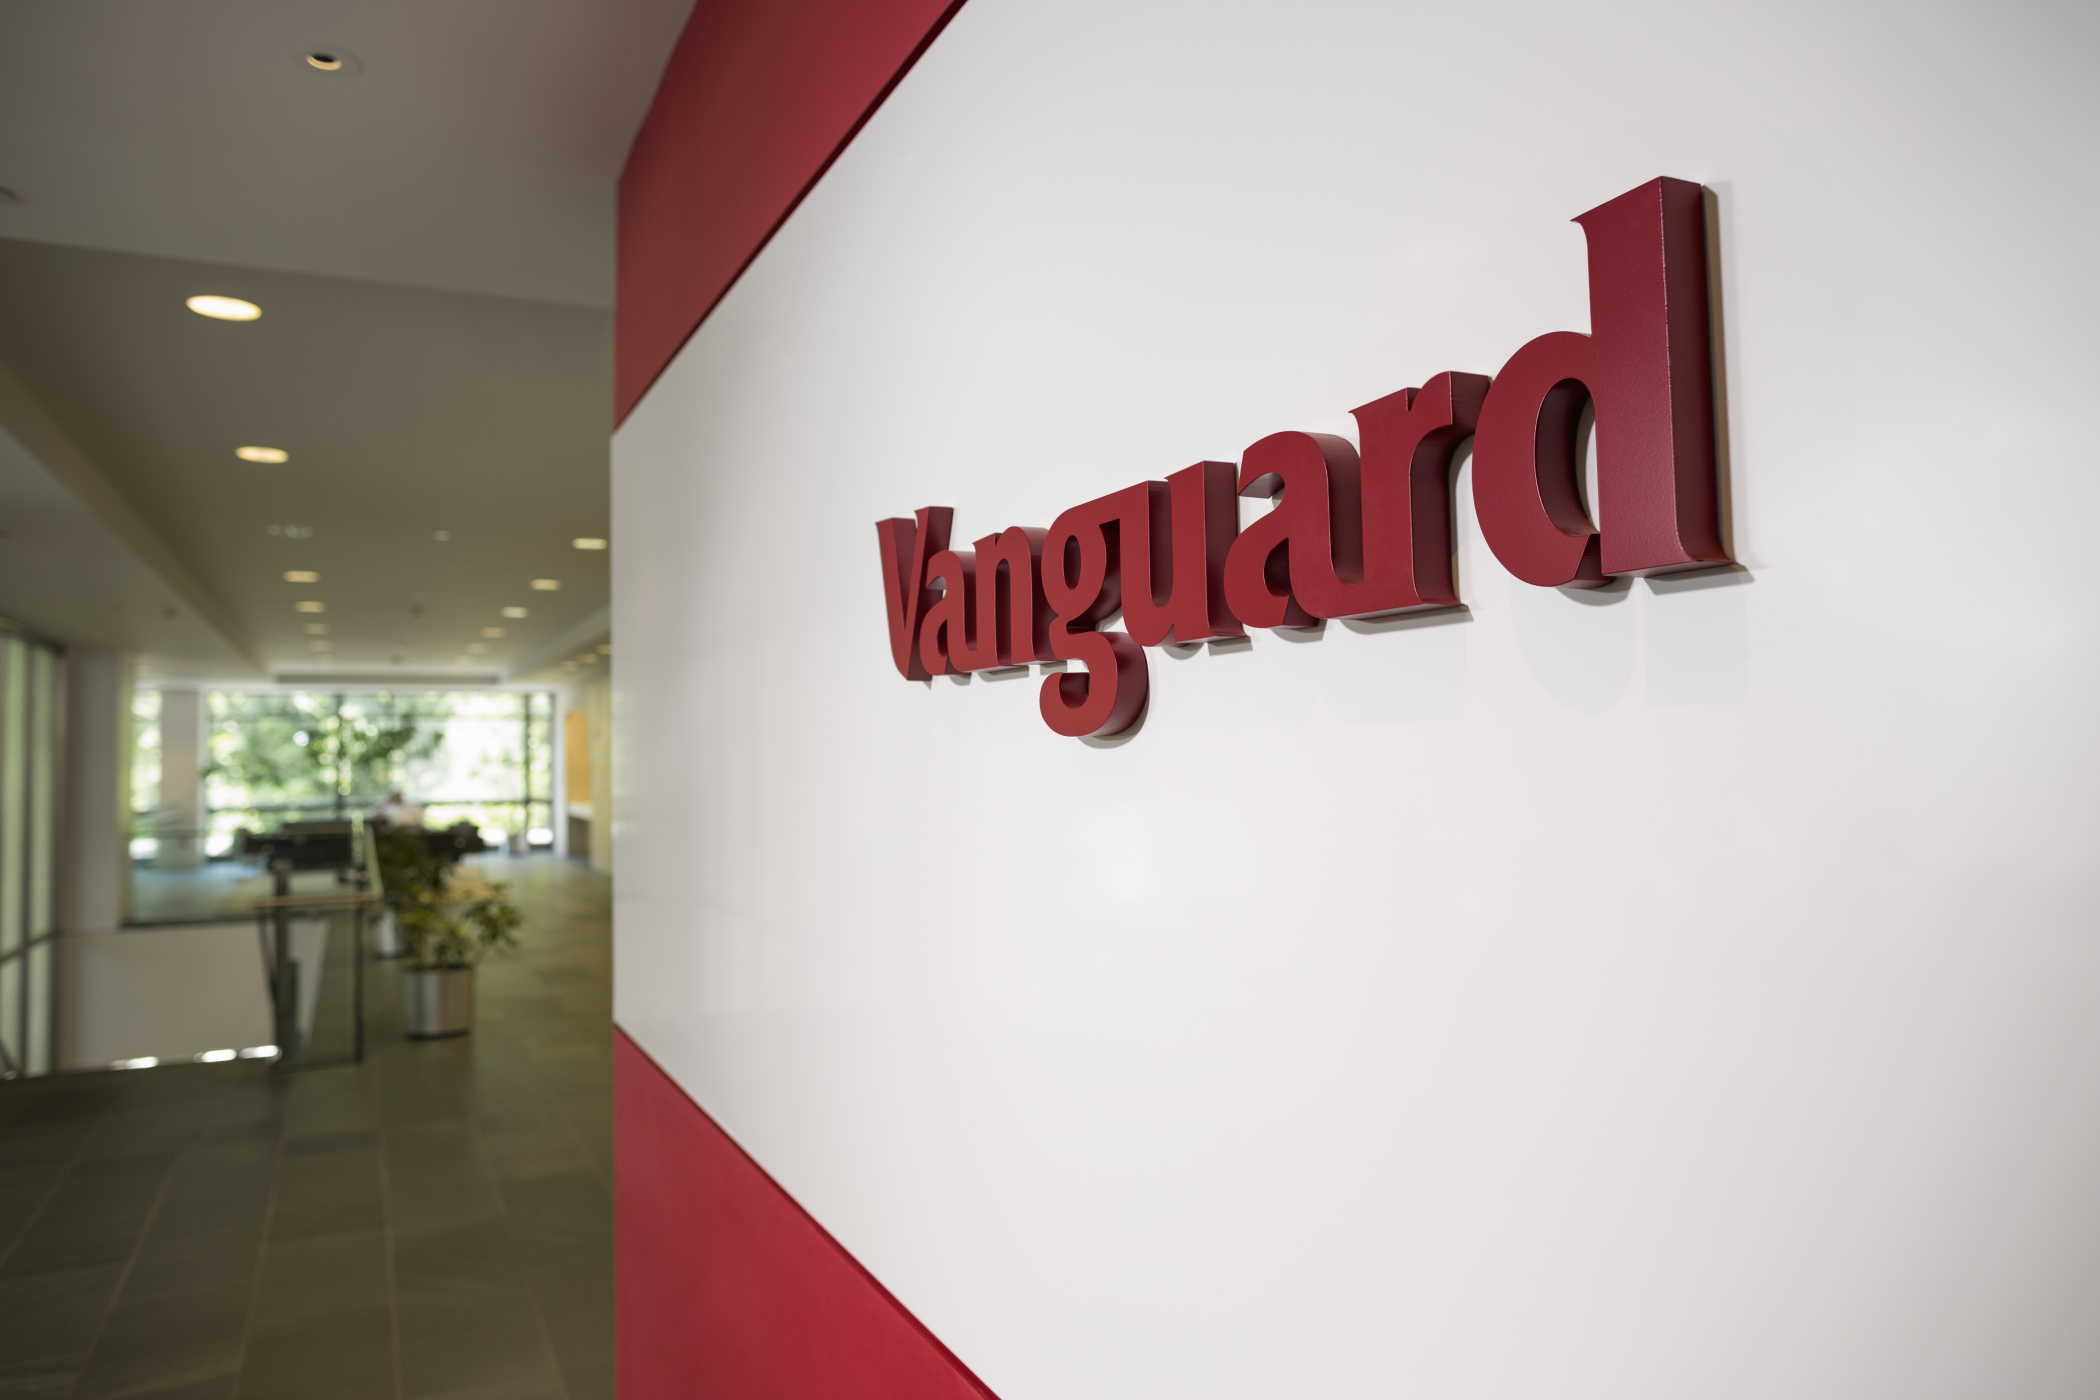 Vanguard to sell 246-acre Exton property